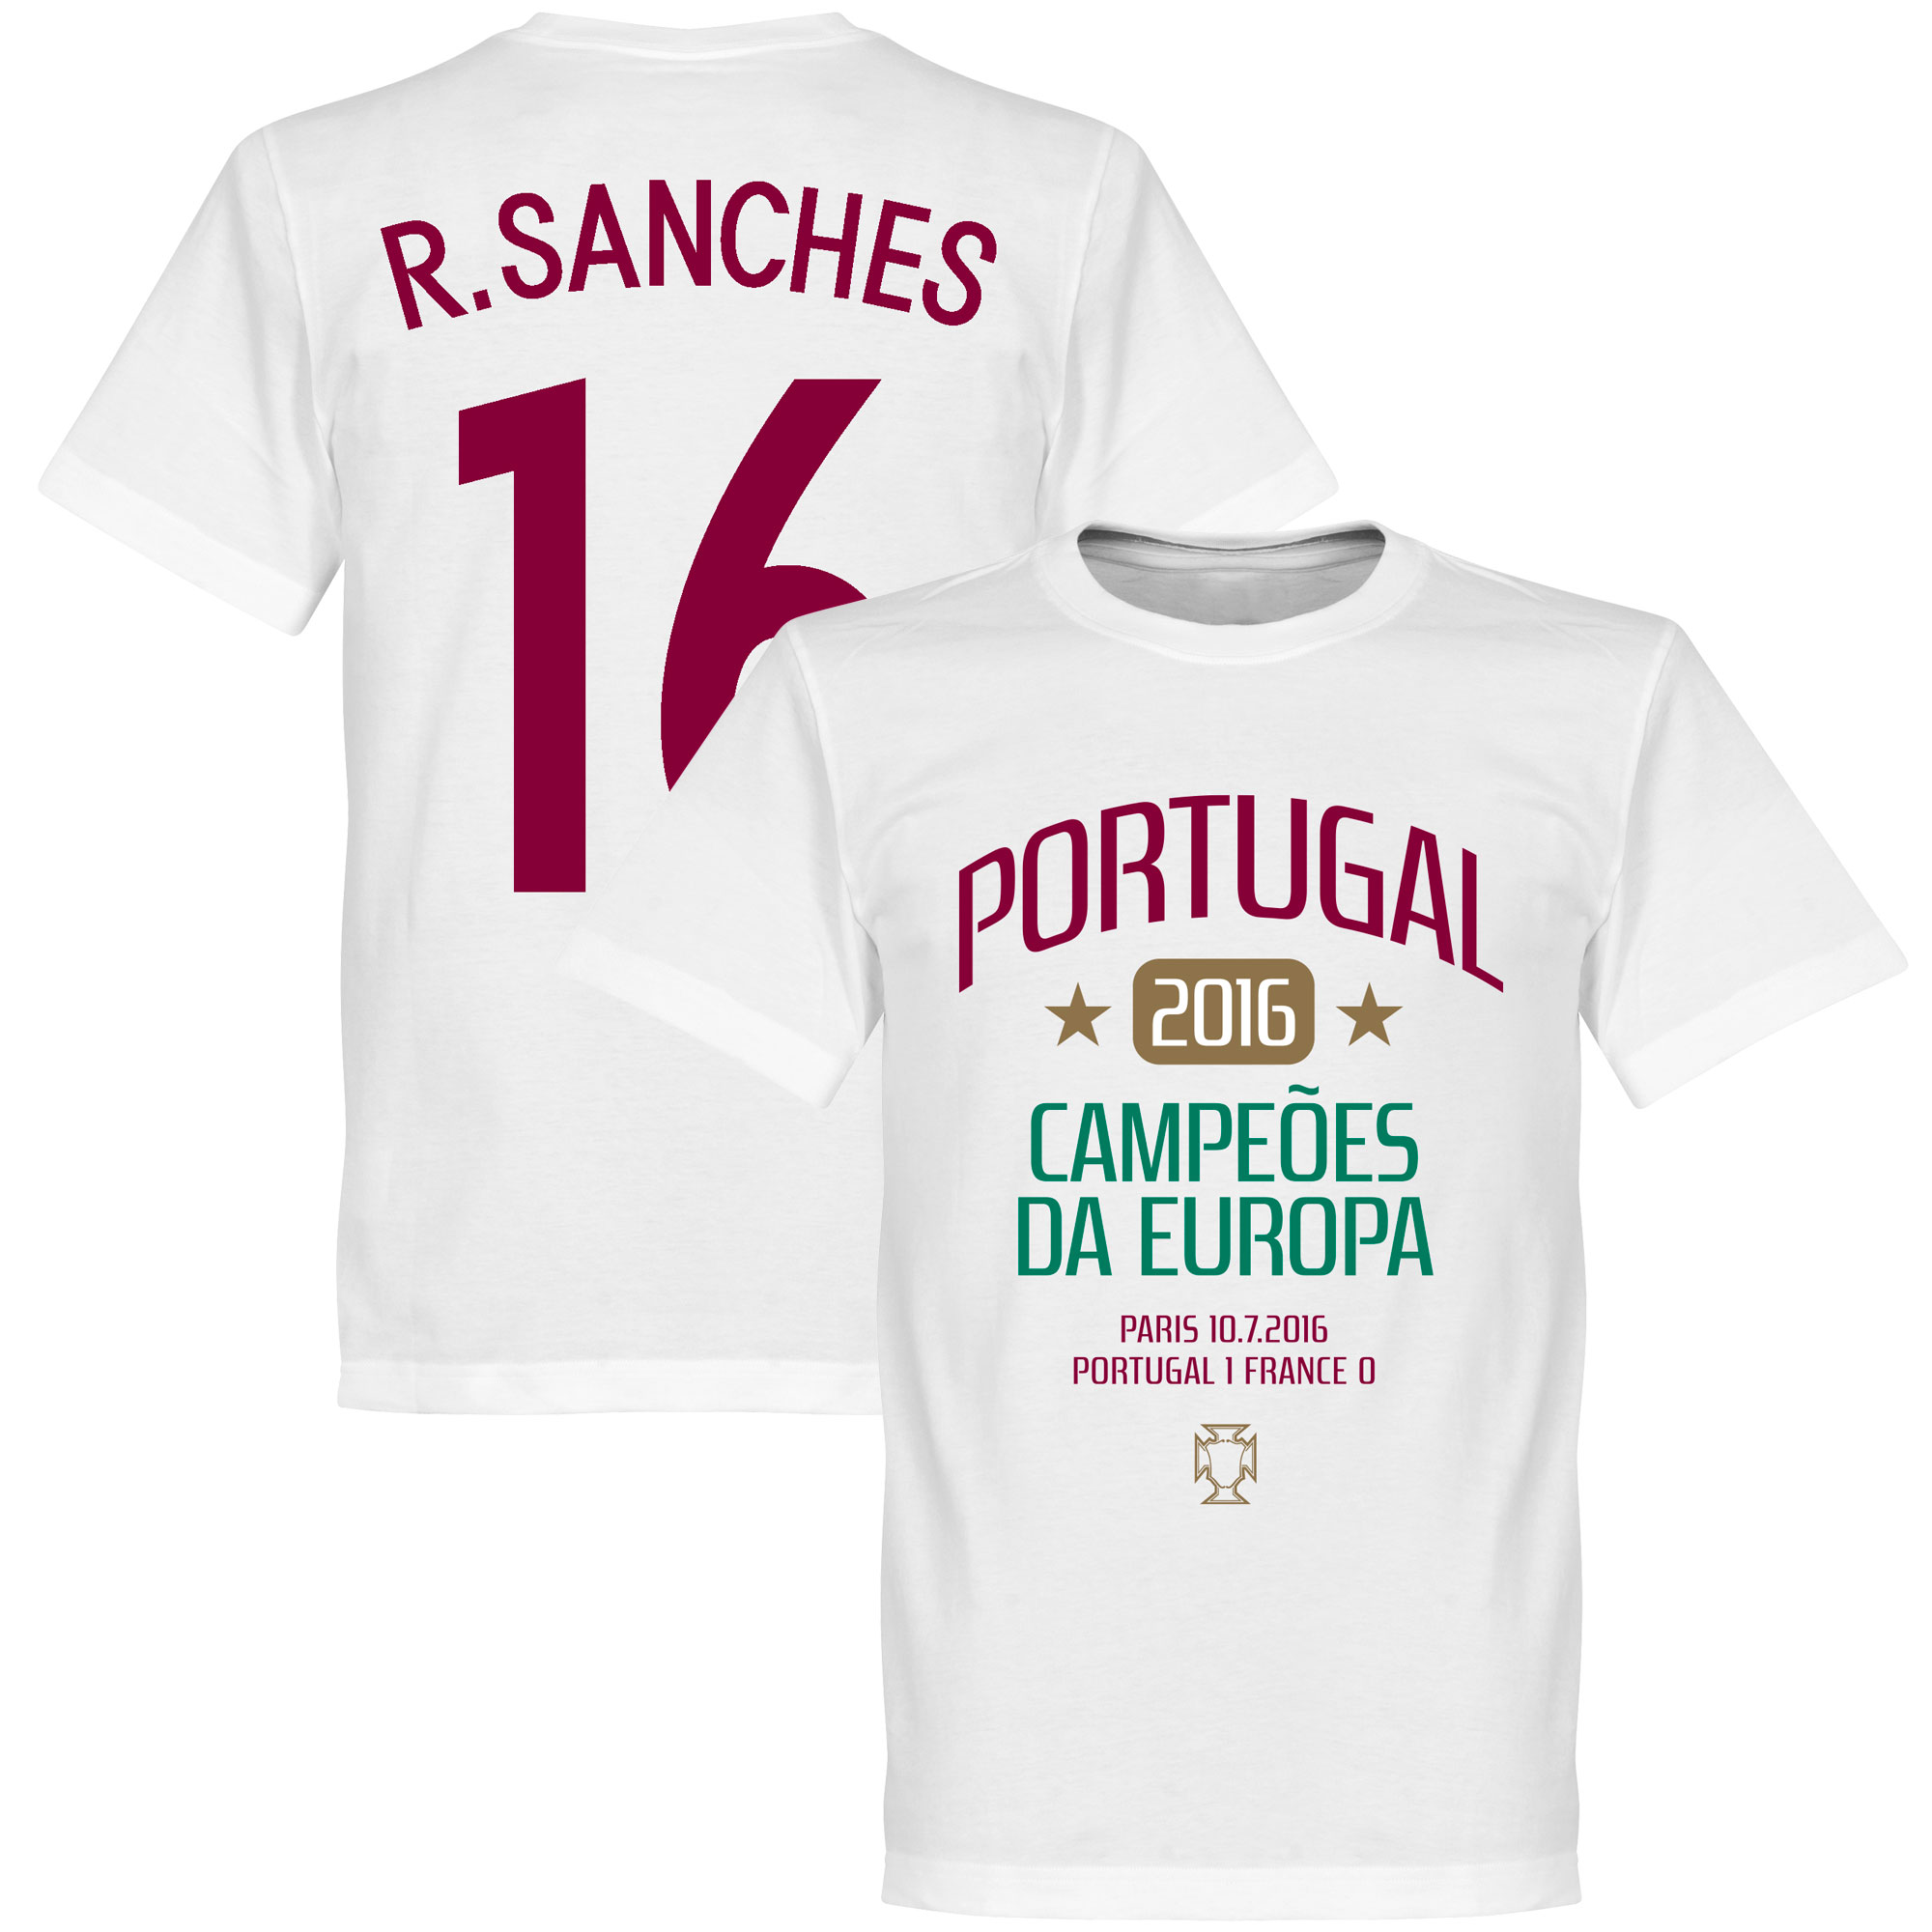 Portugal European Champions 2016 Sanches Tee - White - XXXXL